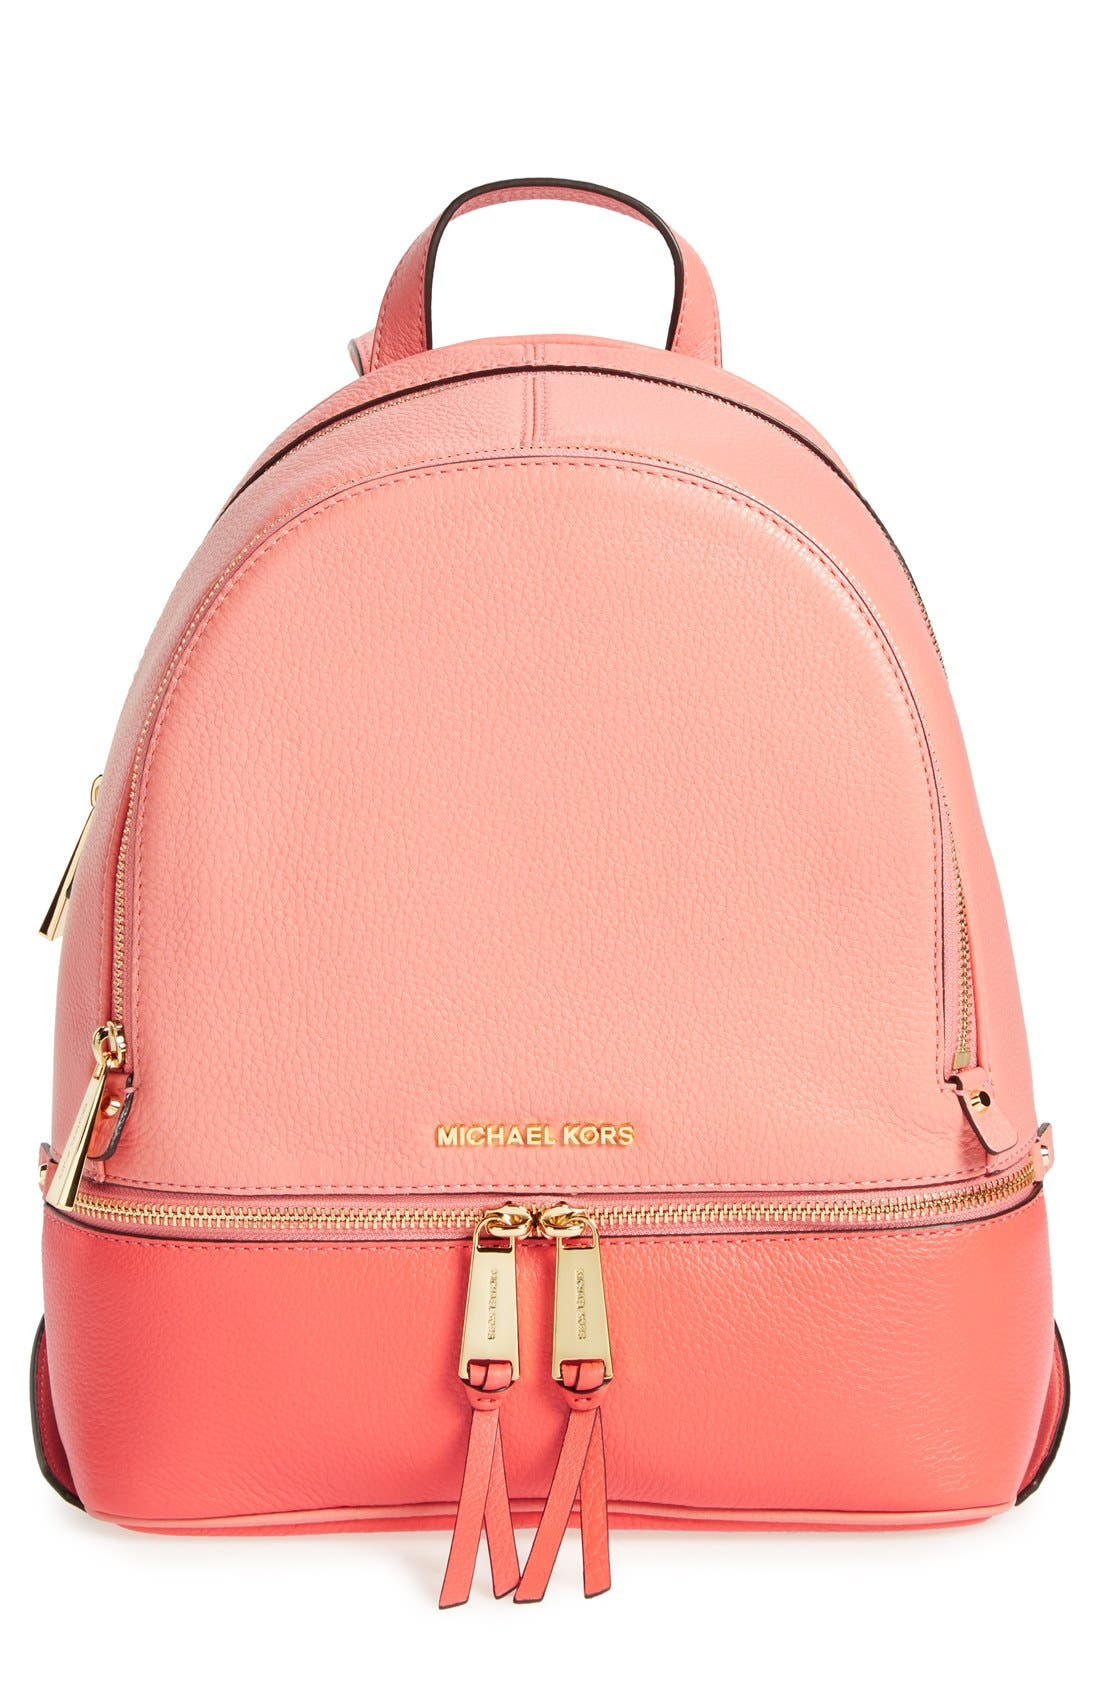 'Small Rhea' Colorblock Leather Backpack,                             Main thumbnail 1, color,                             950